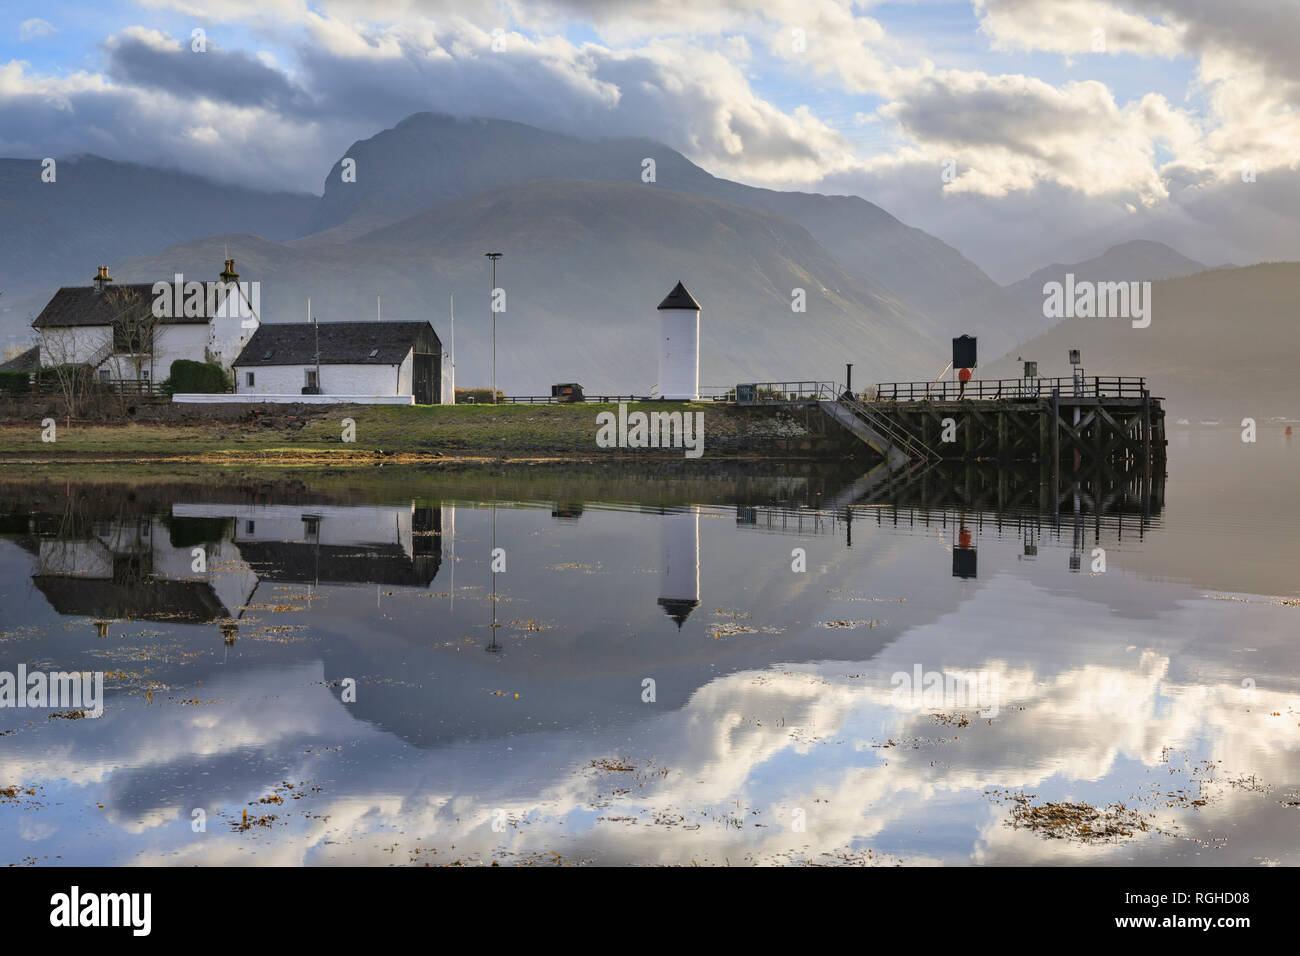 Ben Nevis captured from Corpach in Scotland. - Stock Image